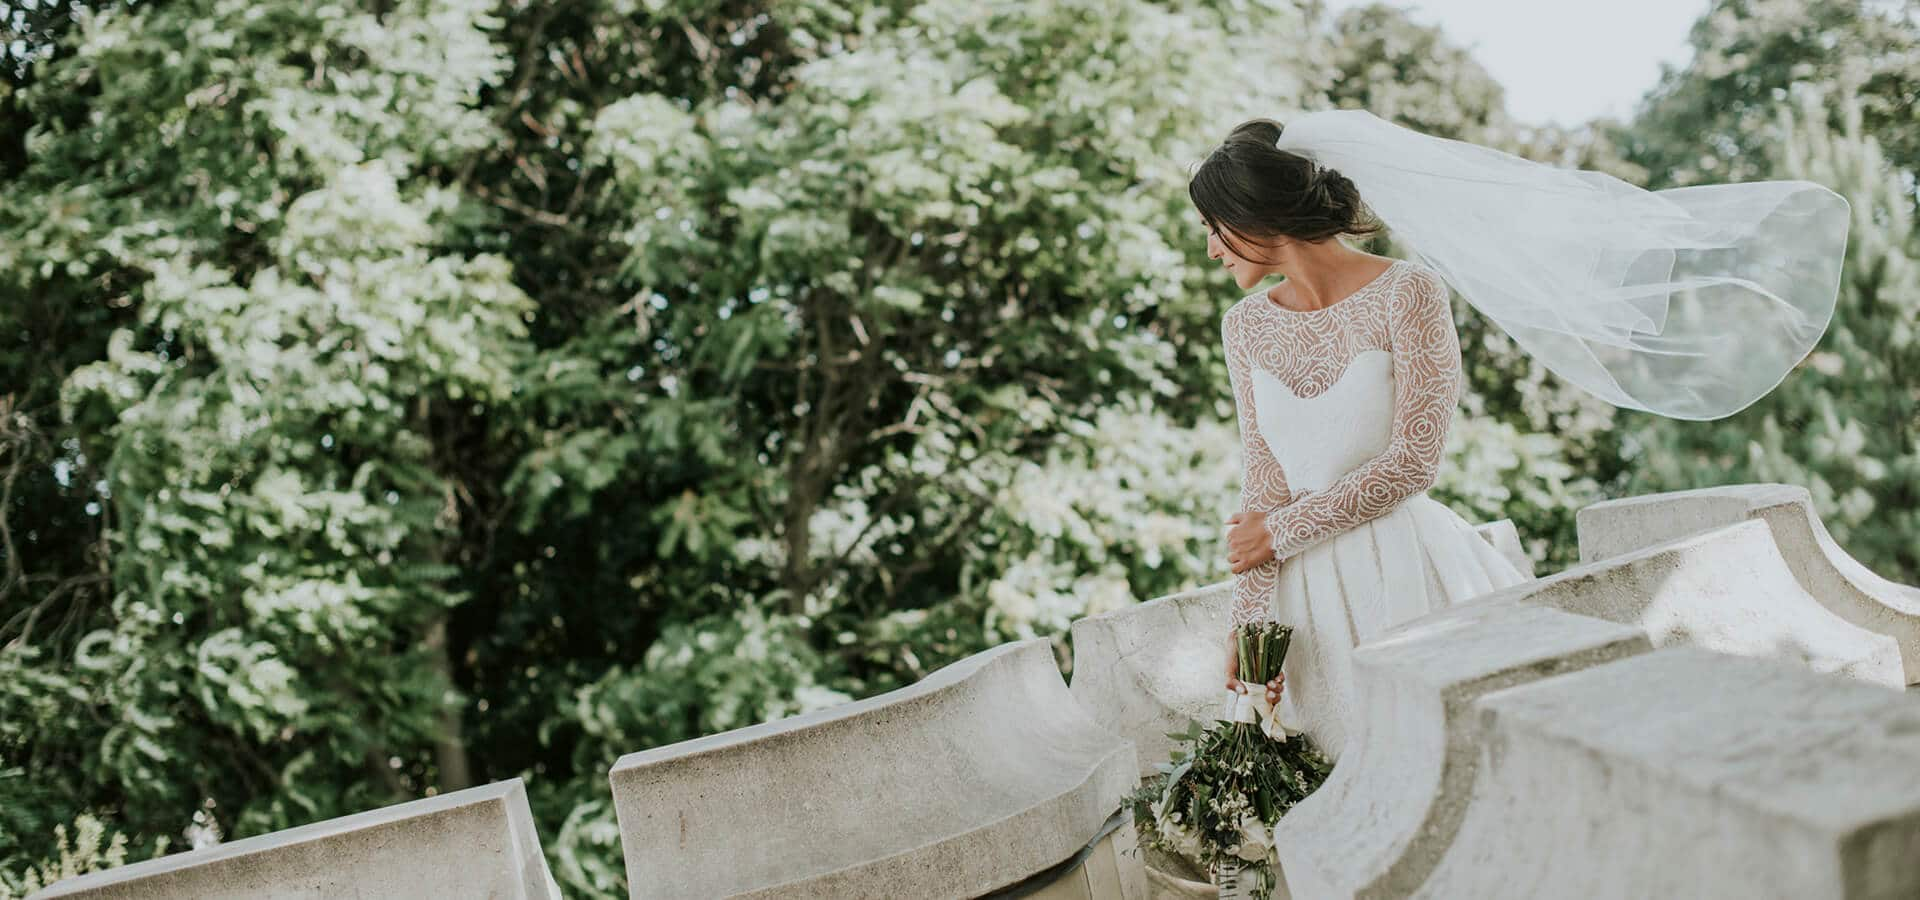 Hero image for Marissa and Will's Fairy-Tale Wedding at the Always Enchanting Casa Loma